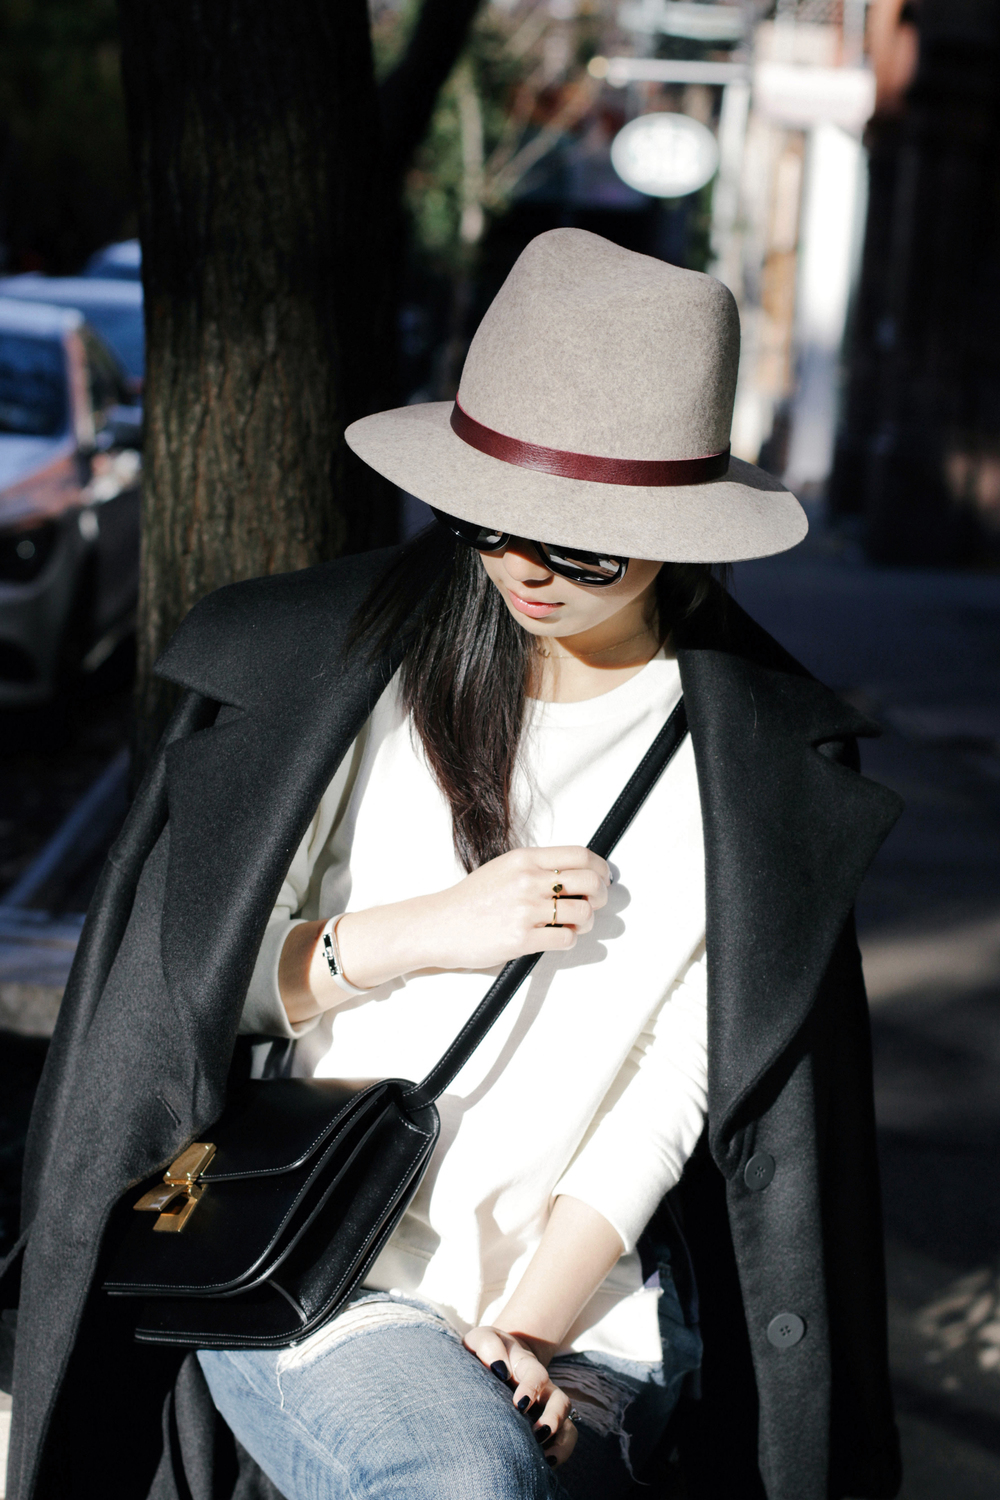 Michelle Waugh Coat, Acne Studios Top, Rag & Bone Jeans, Camilla Skovgaard Boots, Céline Bag, Janessa Leone Hat, The Row Sunglasses (Tortoiseshell), Hermes Bracelet (Black), Brandy Pham Rings (One, Two)